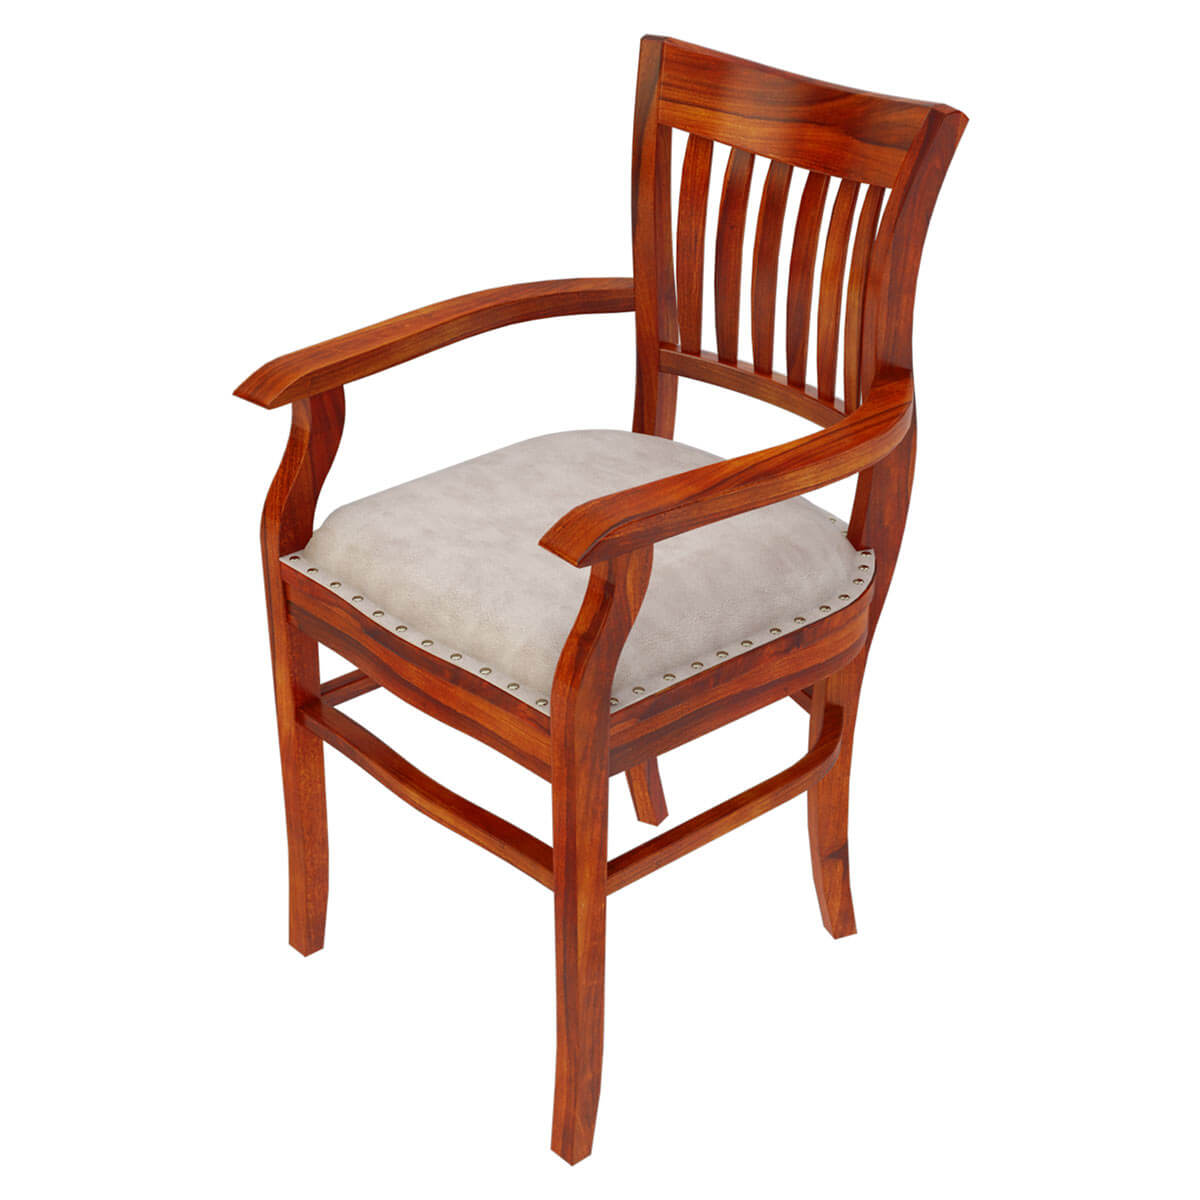 Unfinished Wooden Chairs Solid Wood Arm Chair Leather Cushion Dining Furniture